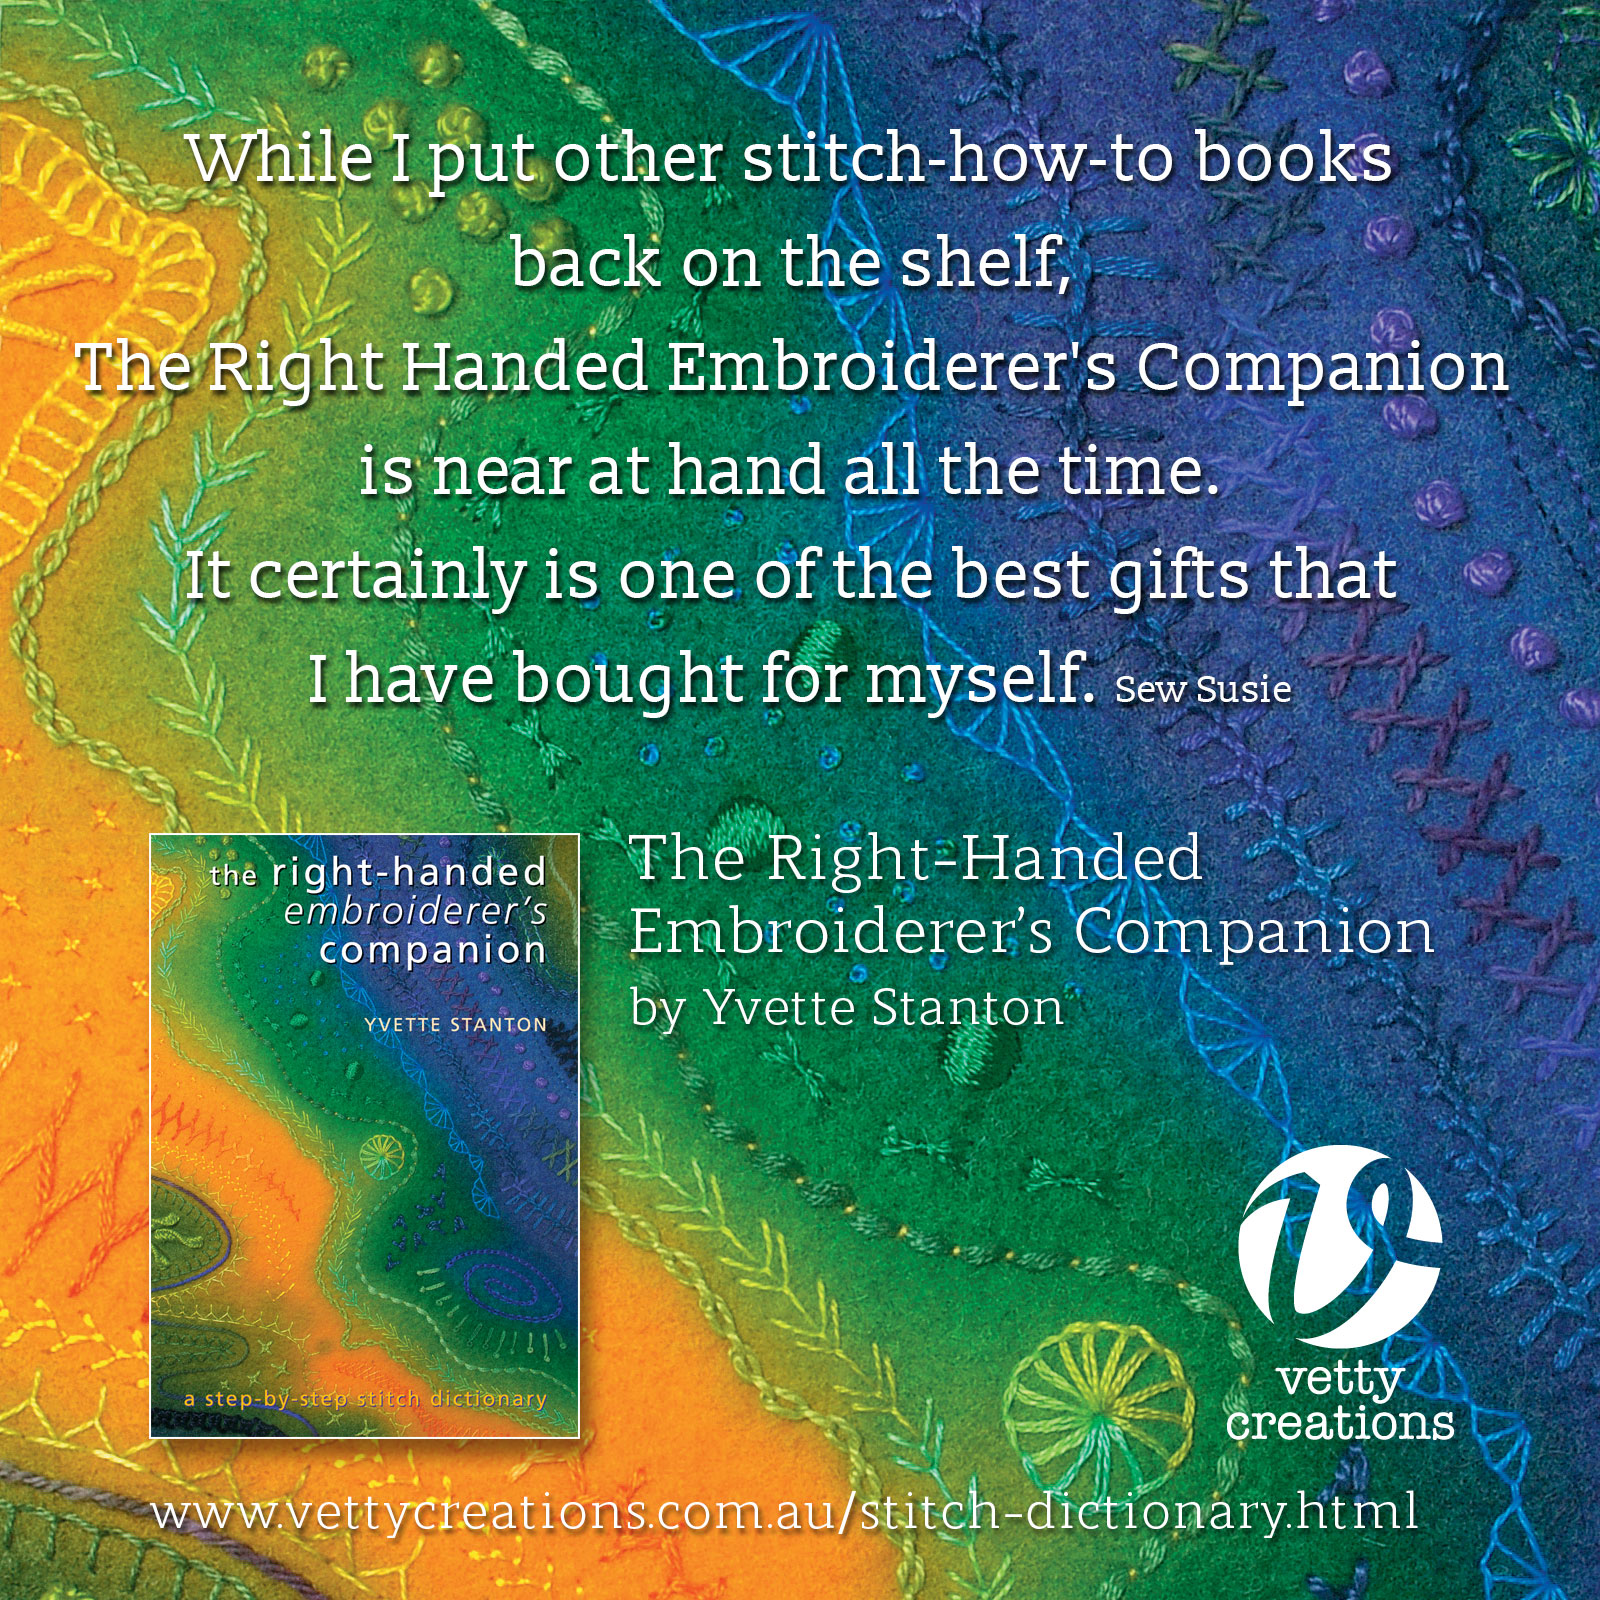 The Right-Handed Embroiderers Companion